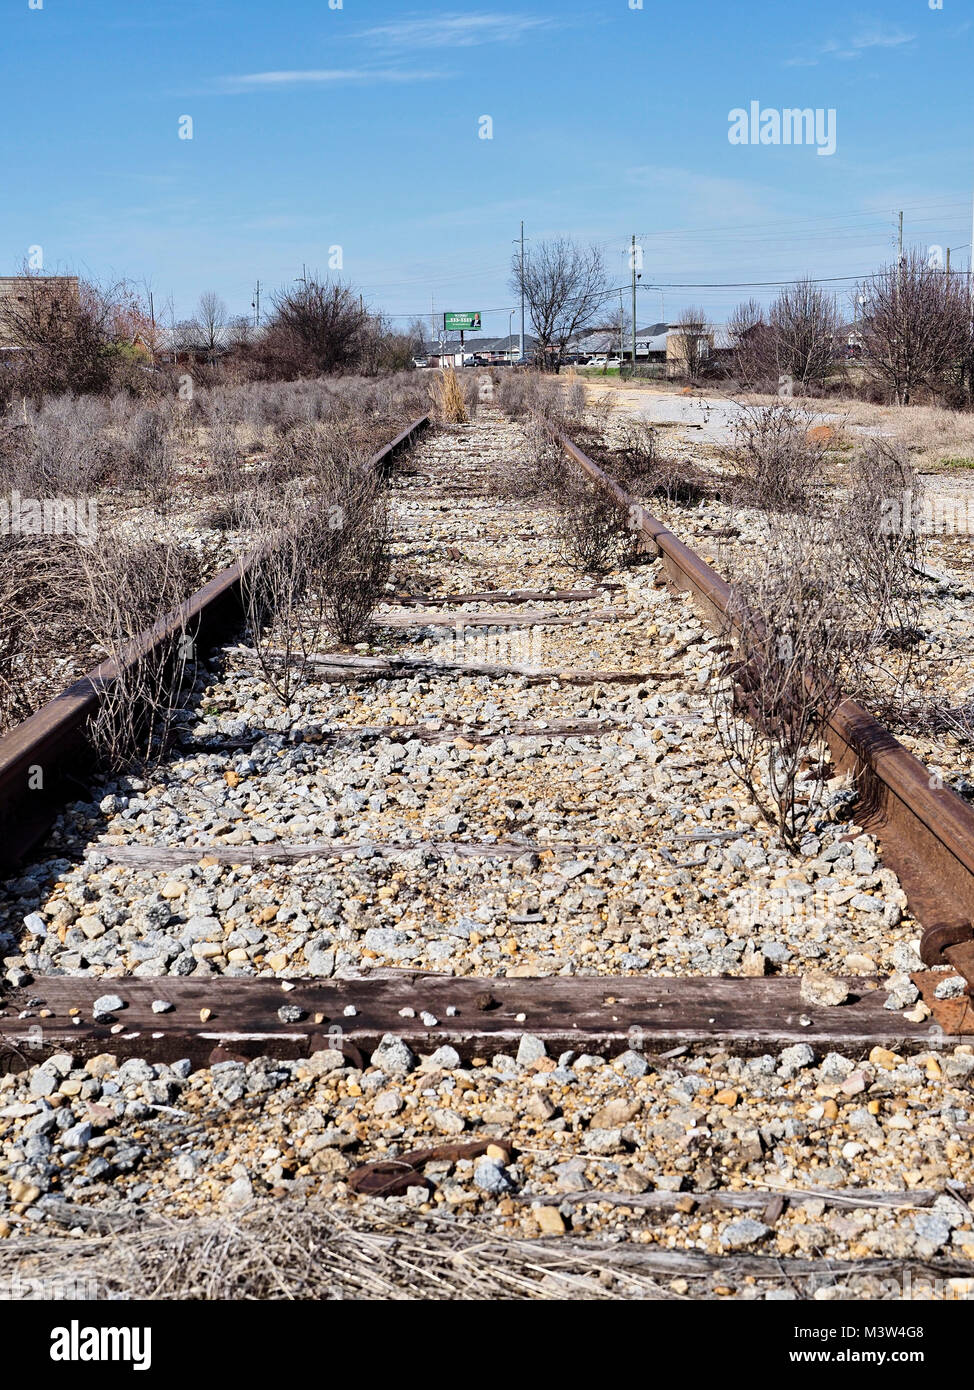 Abandoned railroad or railway track or tracks in urban Montgomery, Alabama USA. - Stock Image